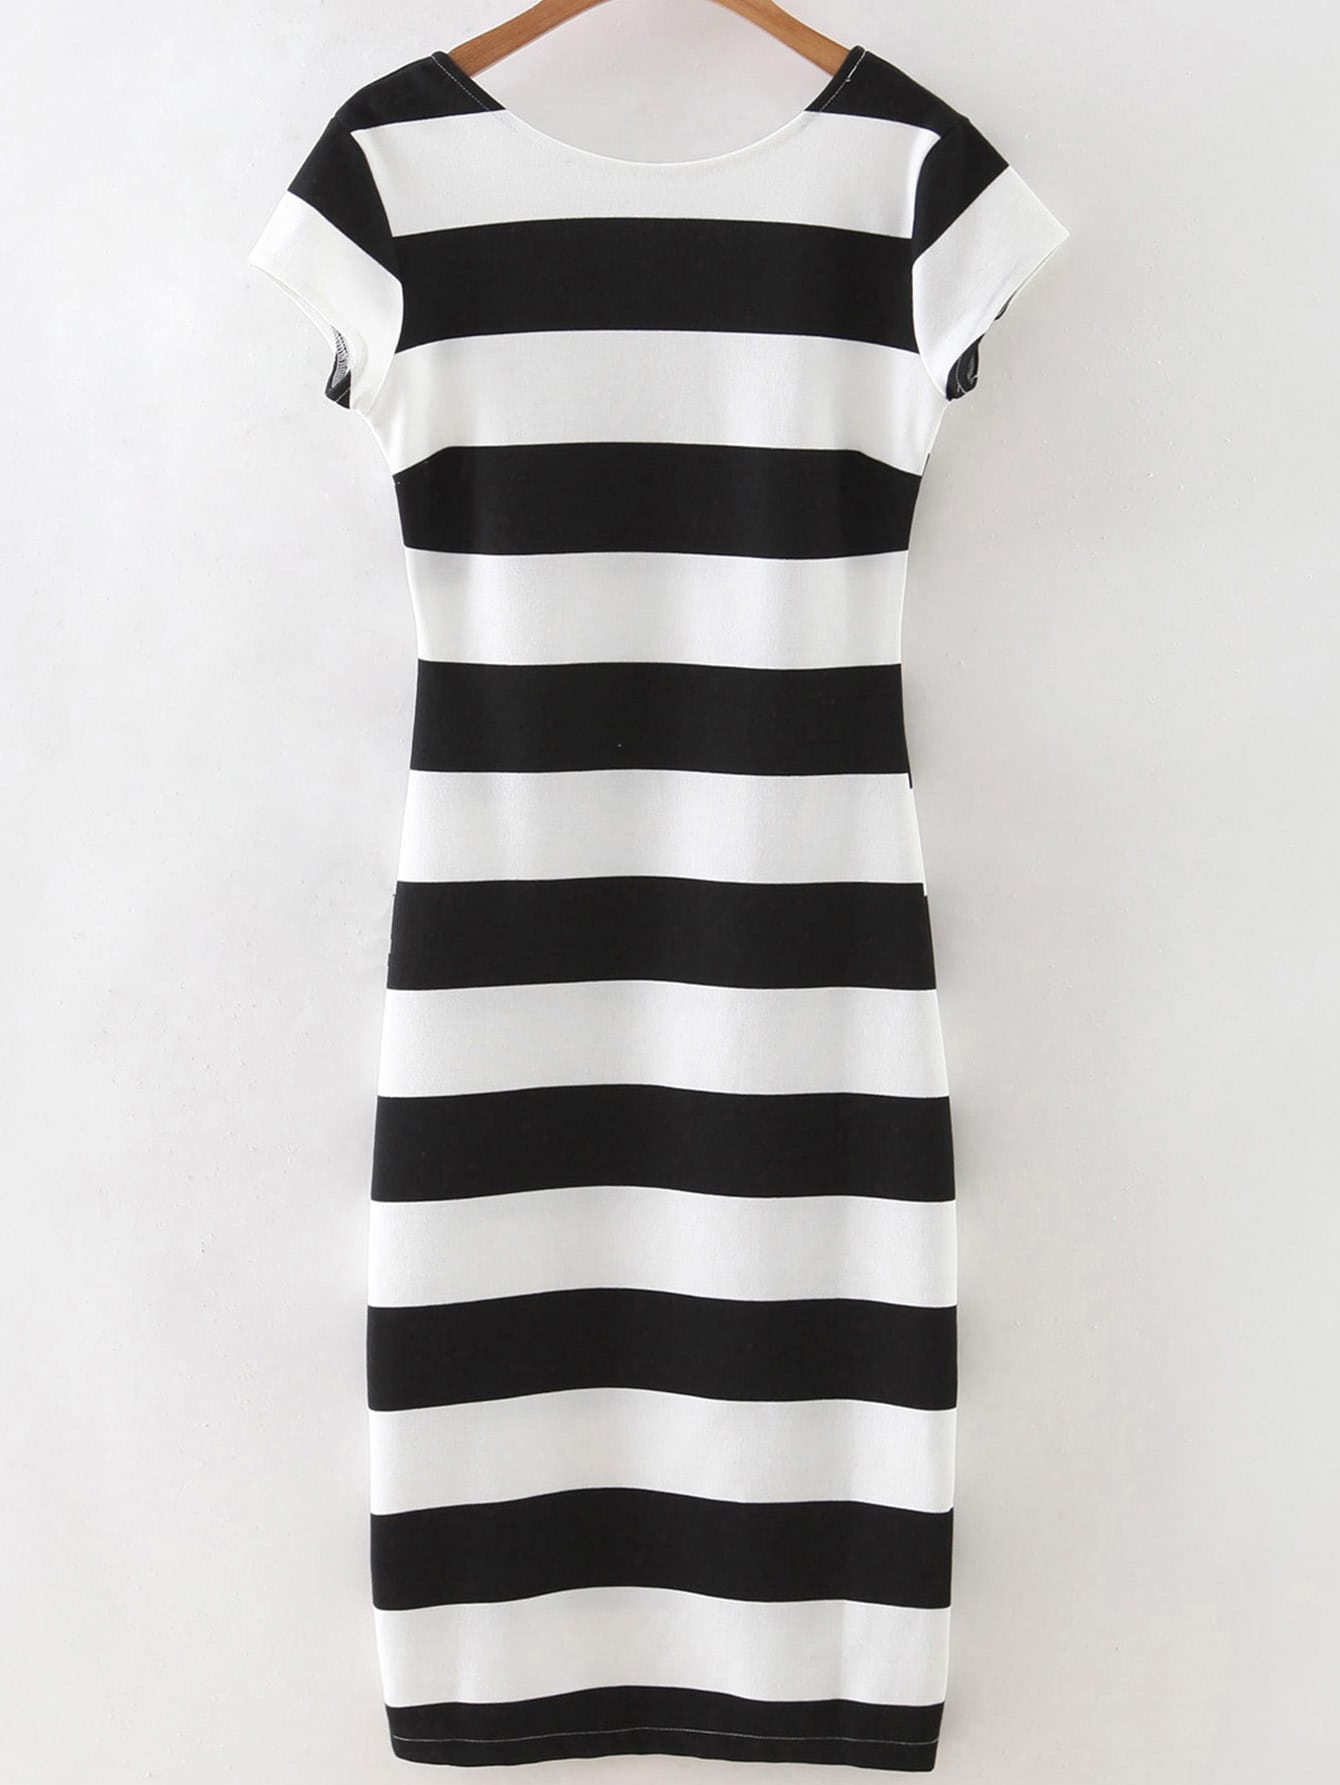 Black White Striped Short Sleeve Backless DressBlack White Striped Short Sleeve Backless Dress<br><br>color: Black and White<br>size: L,M,S